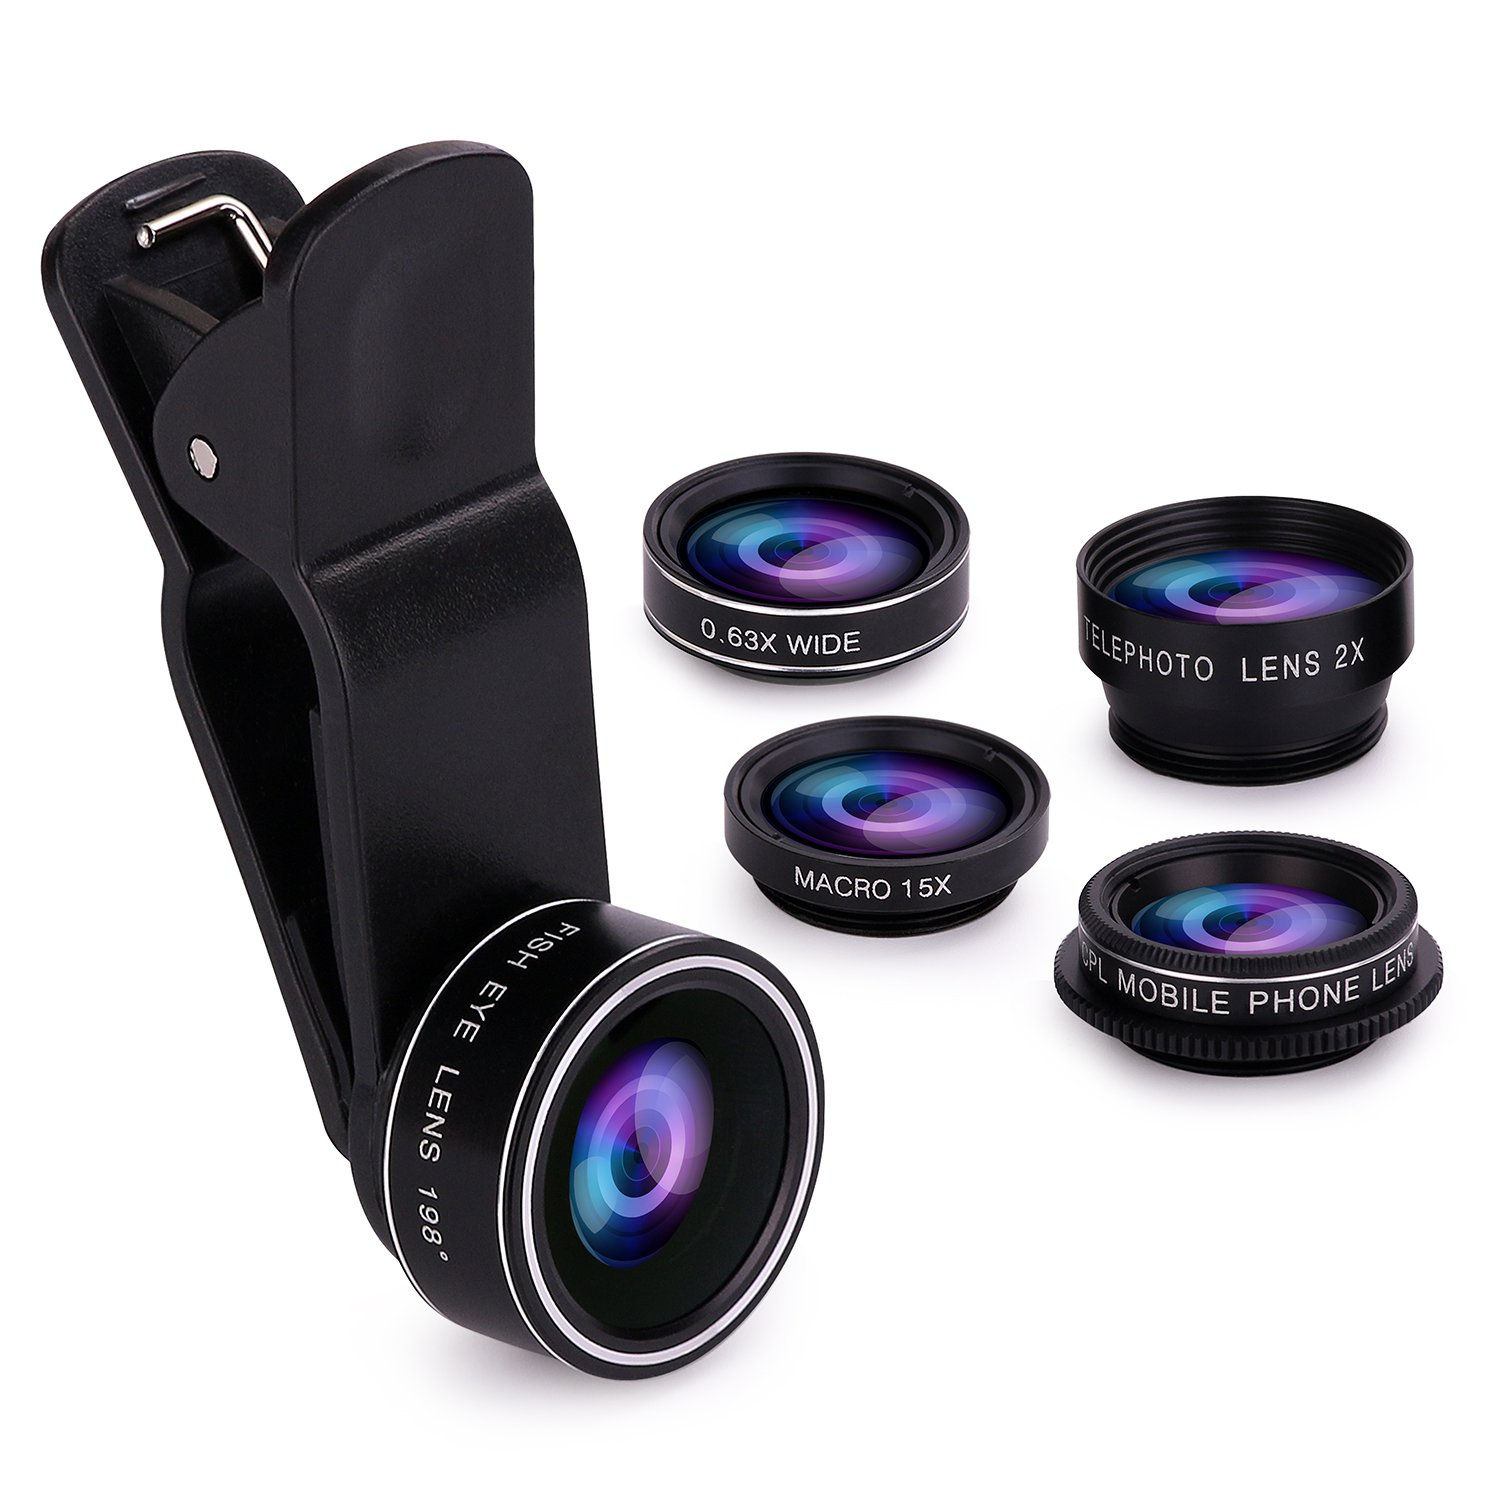 Cell Phone Camera Lens Kit, SEVENKA 11 in 1 Super Wide Angle+Macro+ Fisheye+Telephoto+CPL/Flow/Radial/Star/Soft Filter+Kaleidoscope Lens Compatible for iPhone, Samsung, Sony, and Android Smartphone GC-11X Lens Kit